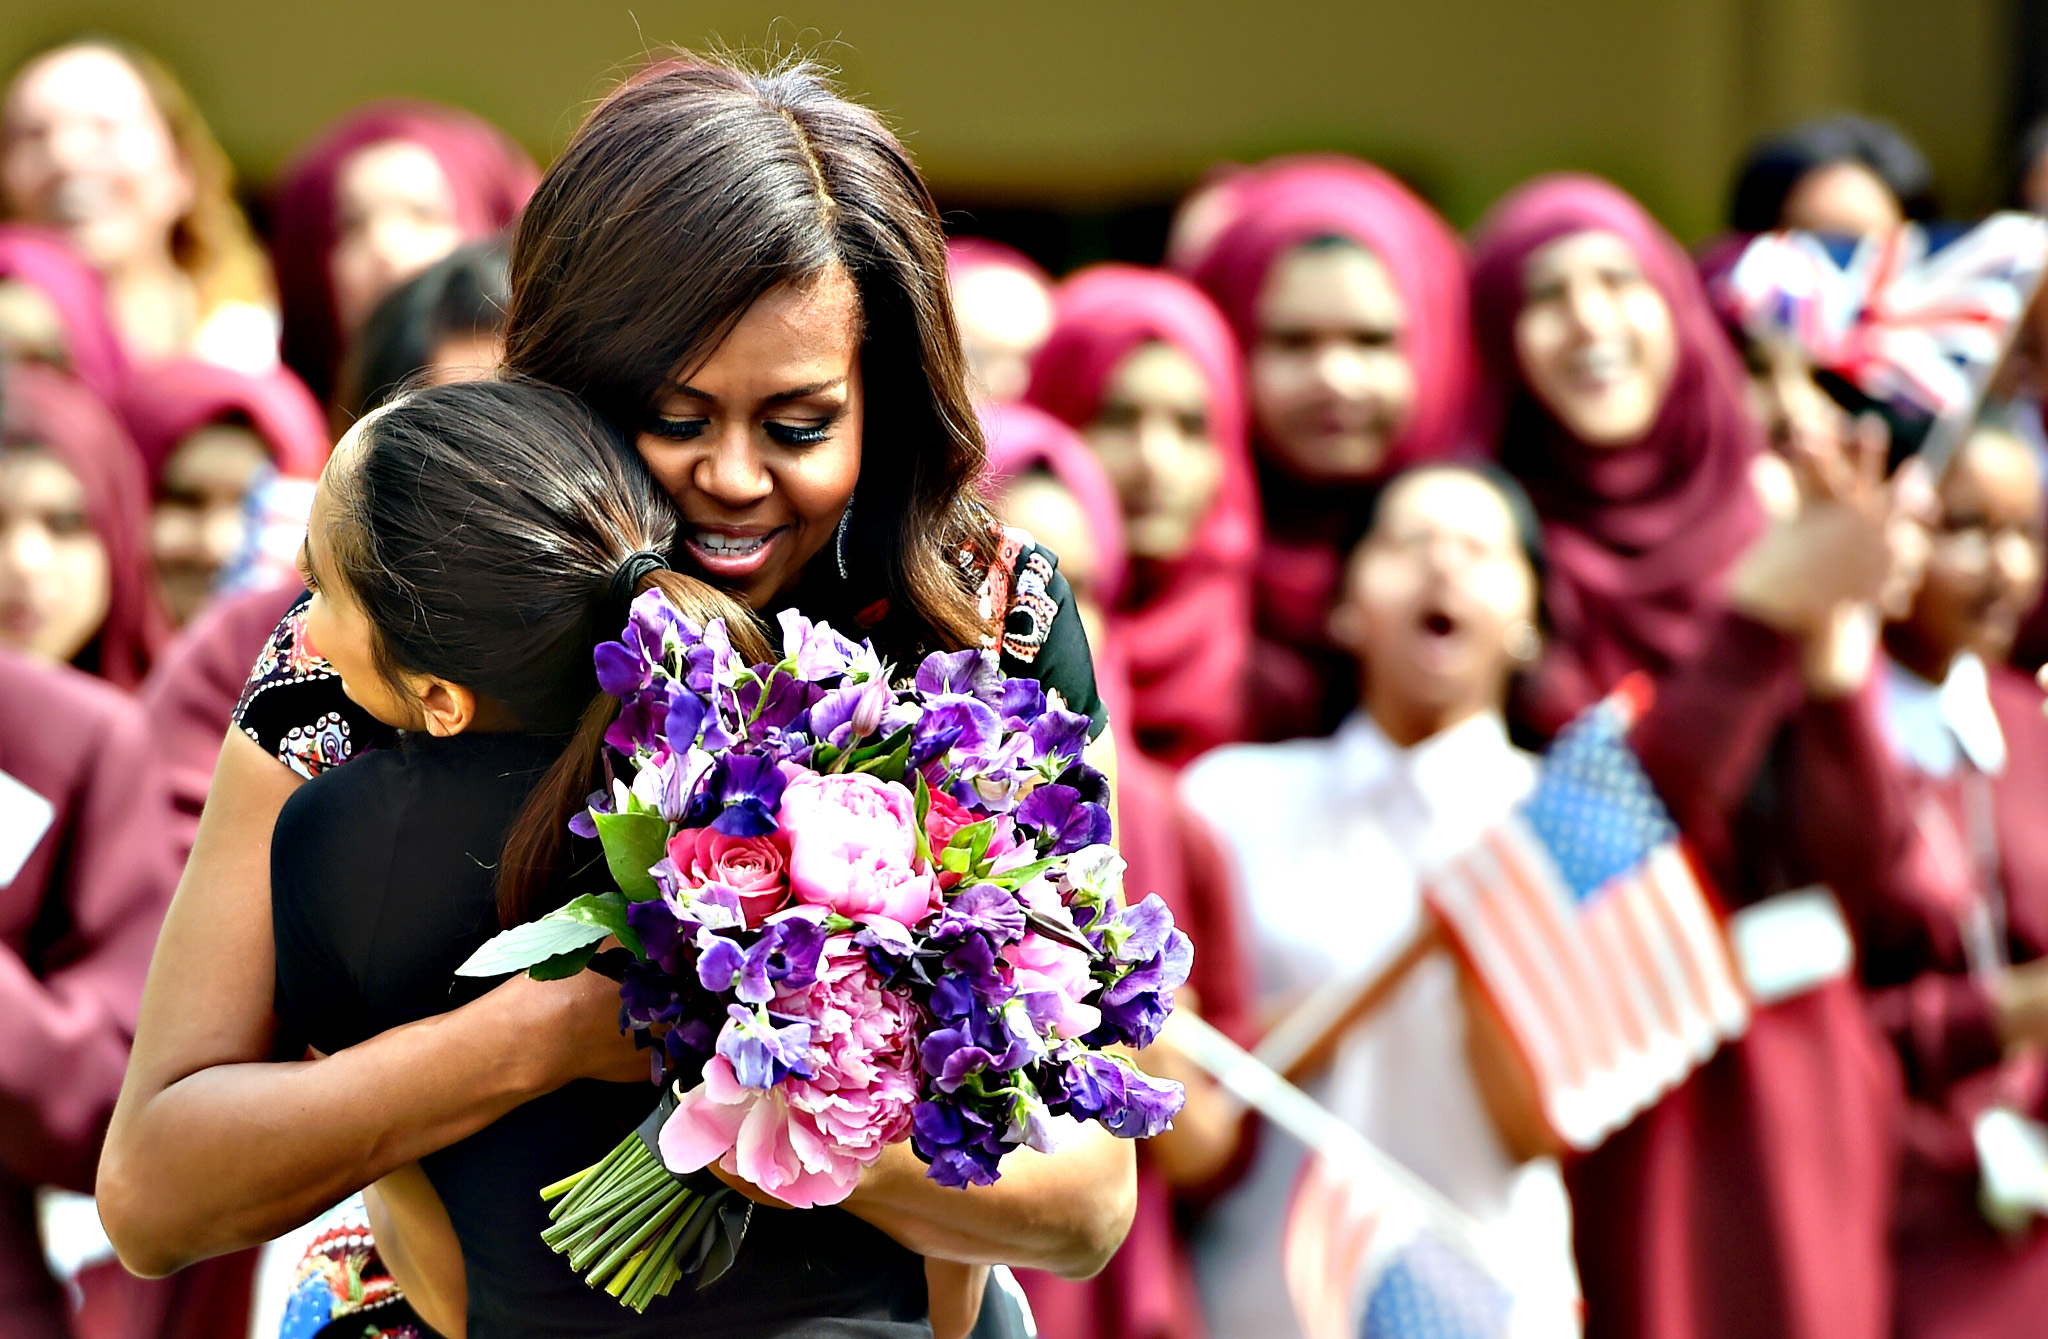 Women Empowerment: Michelle Obama Education - The First Lady Visits London As Part Of Her Let Girls Learn Initiative